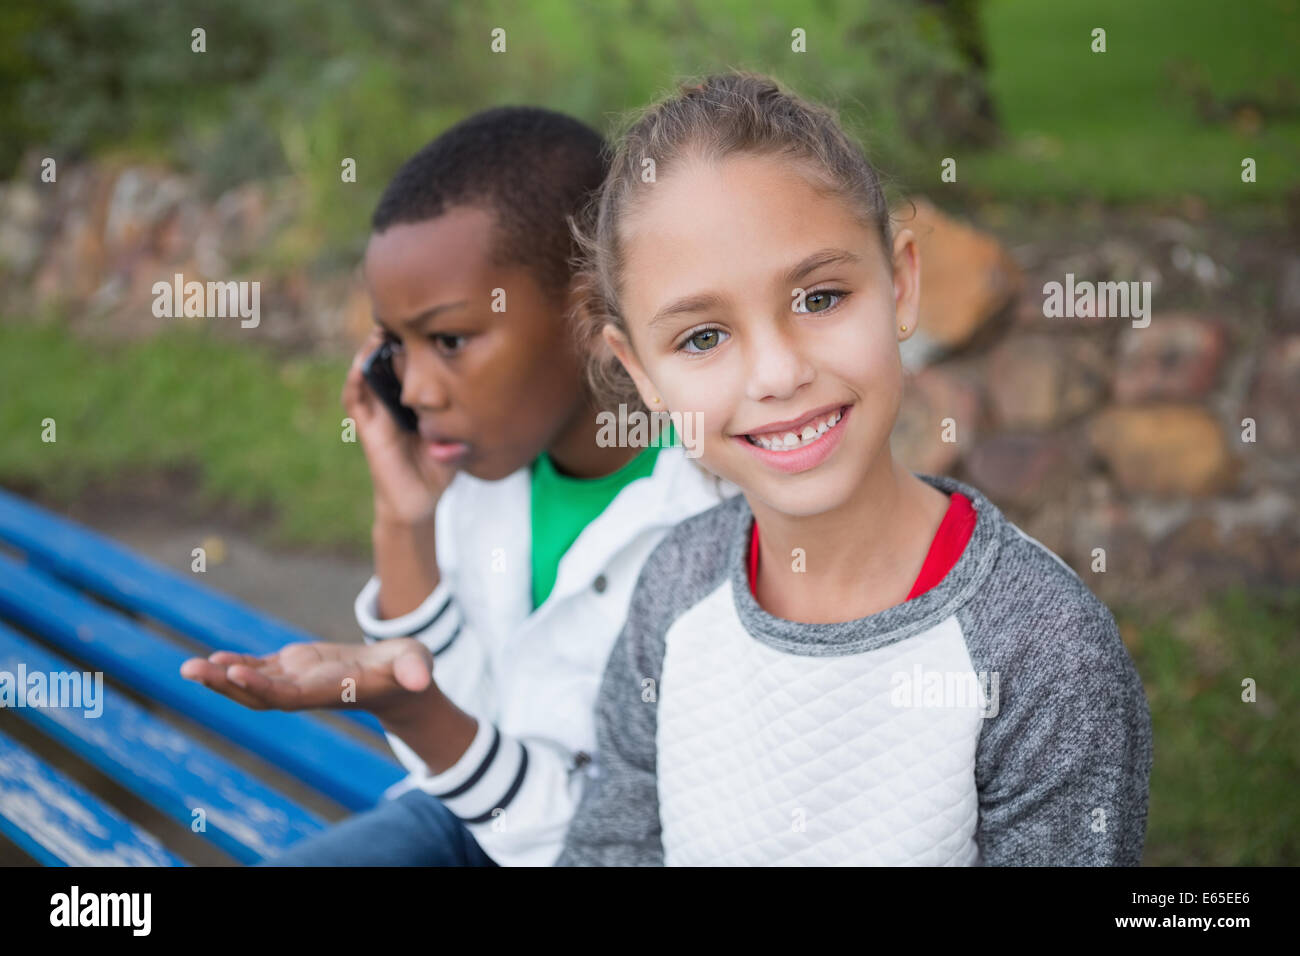 Cute little girl smiling at camera while friend talks on phone - Stock Image